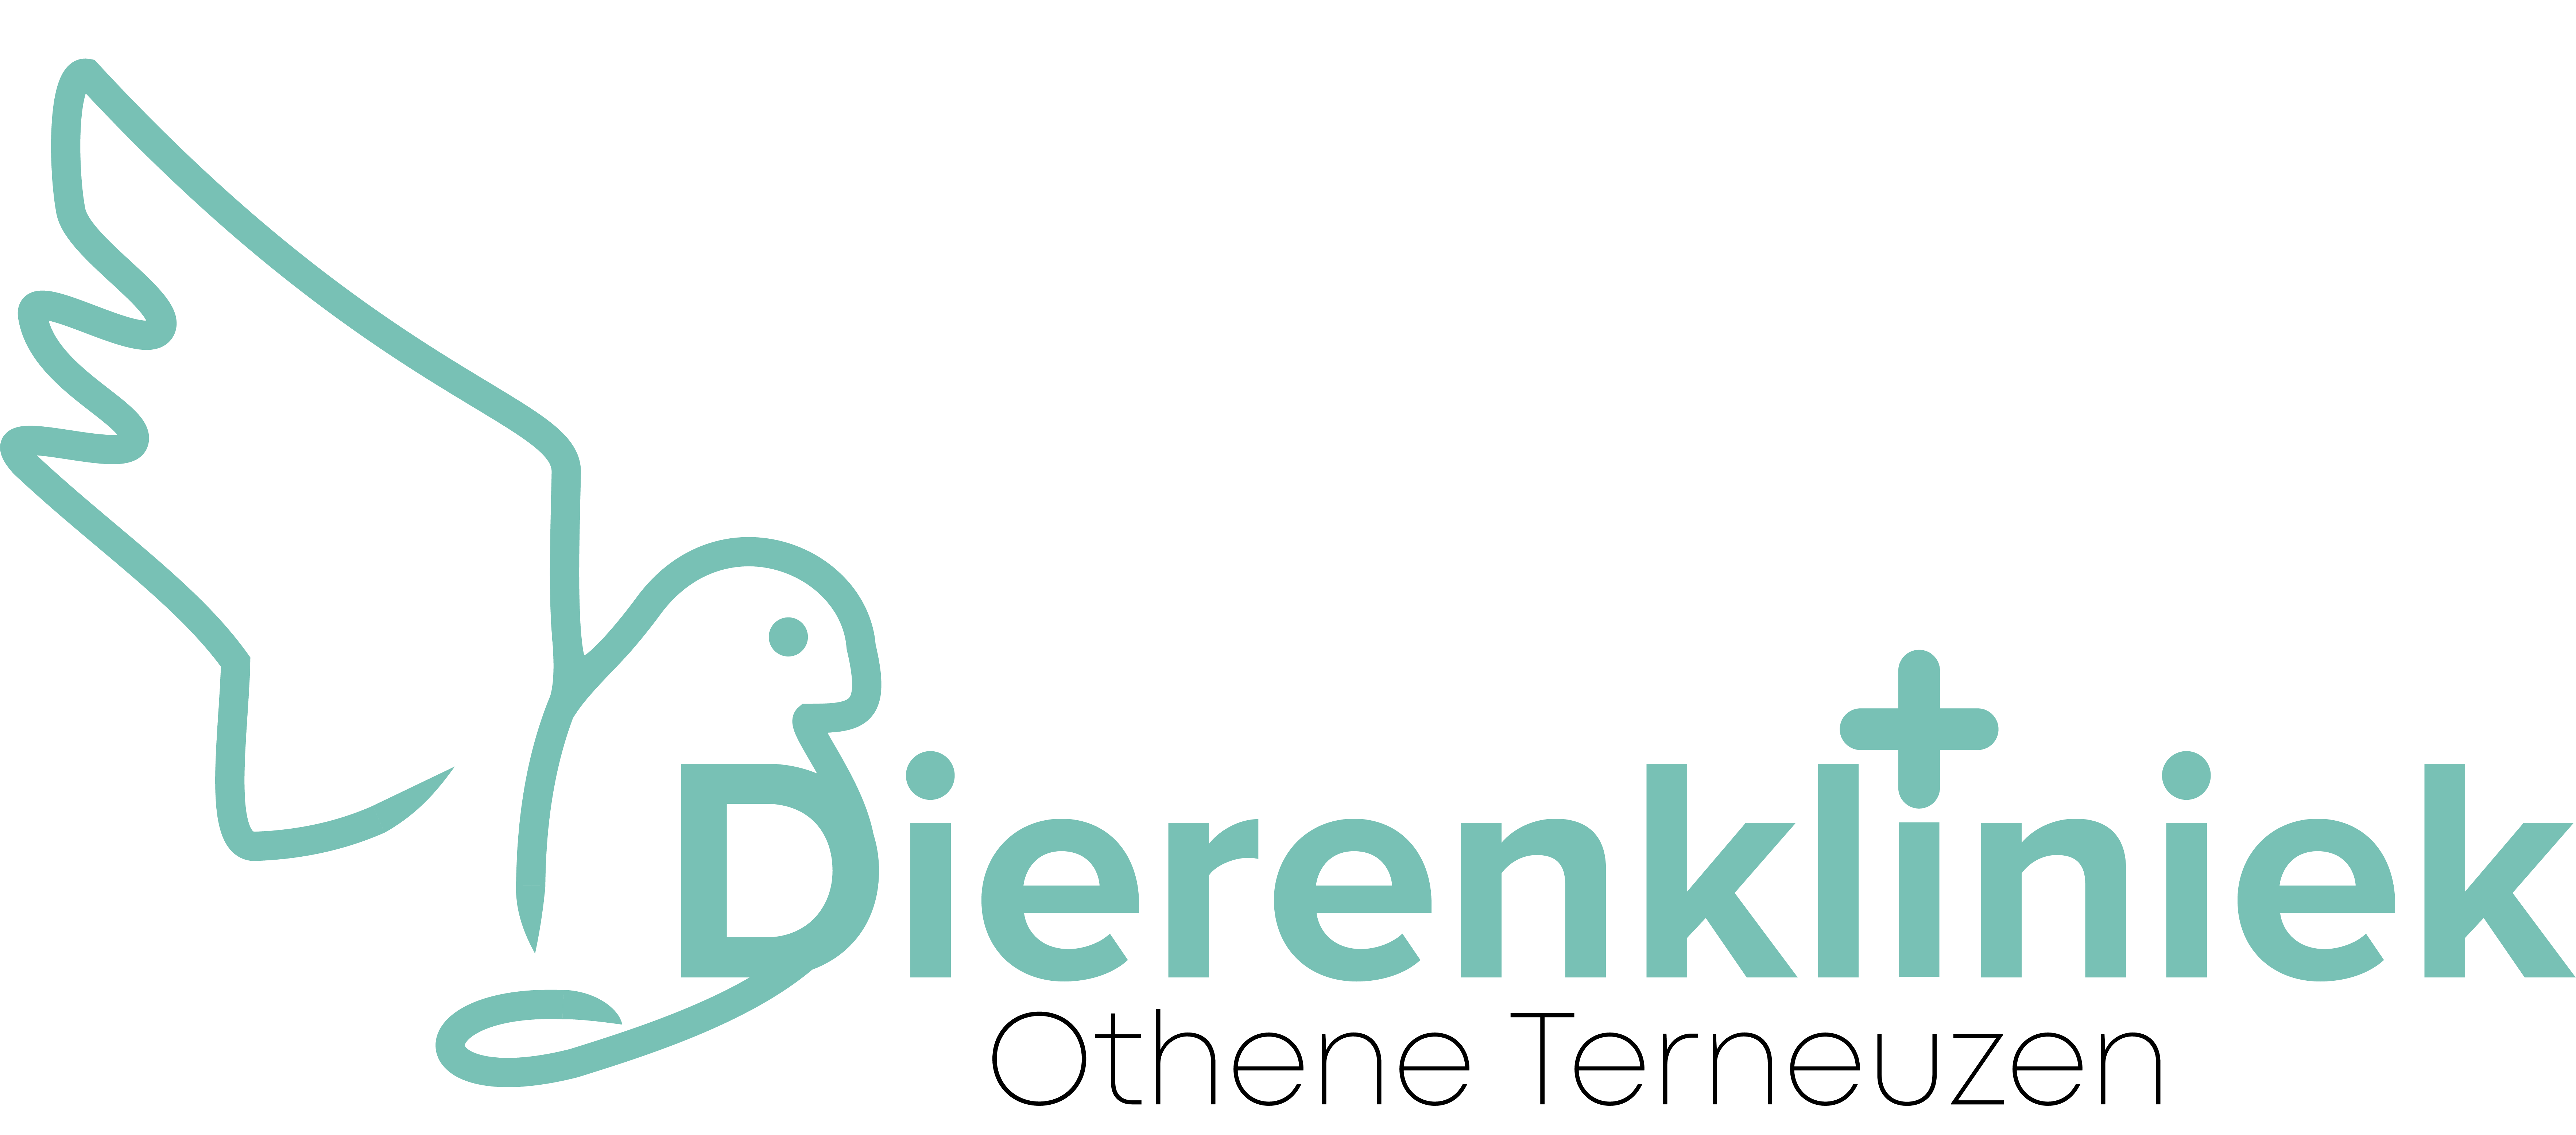 Dierenkliniek Othene